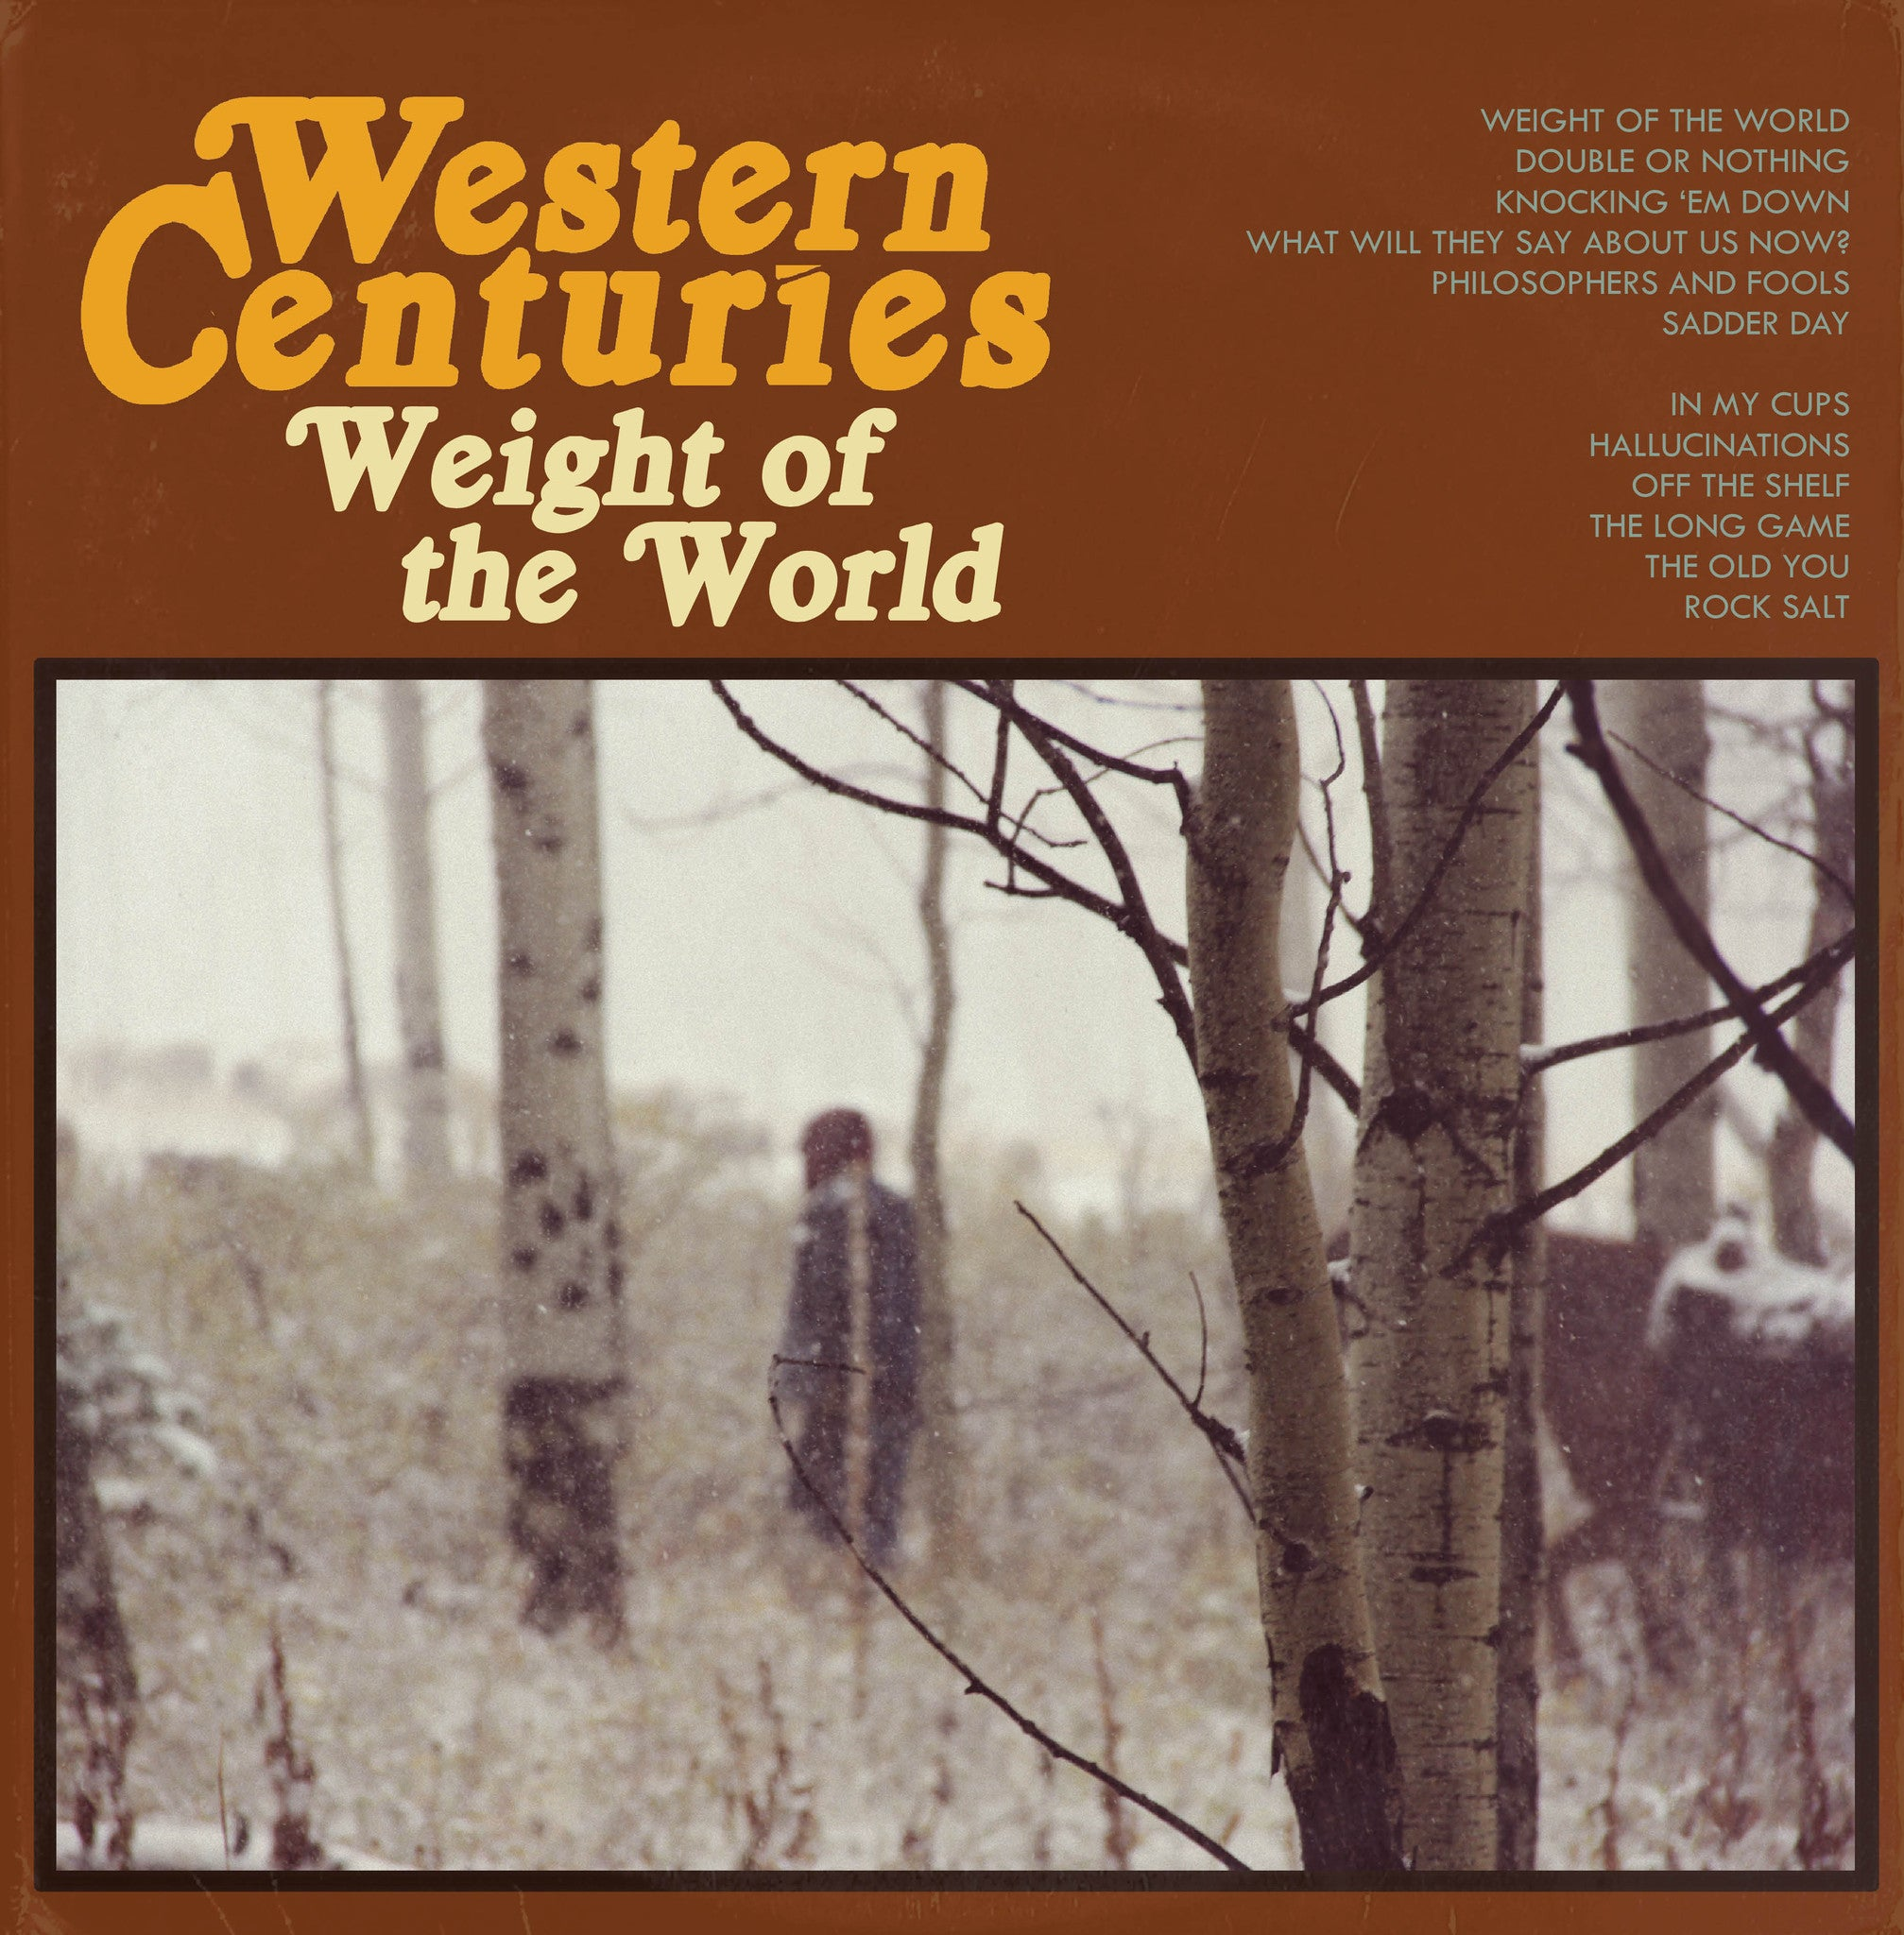 Preorder The New Album From Western Centuries